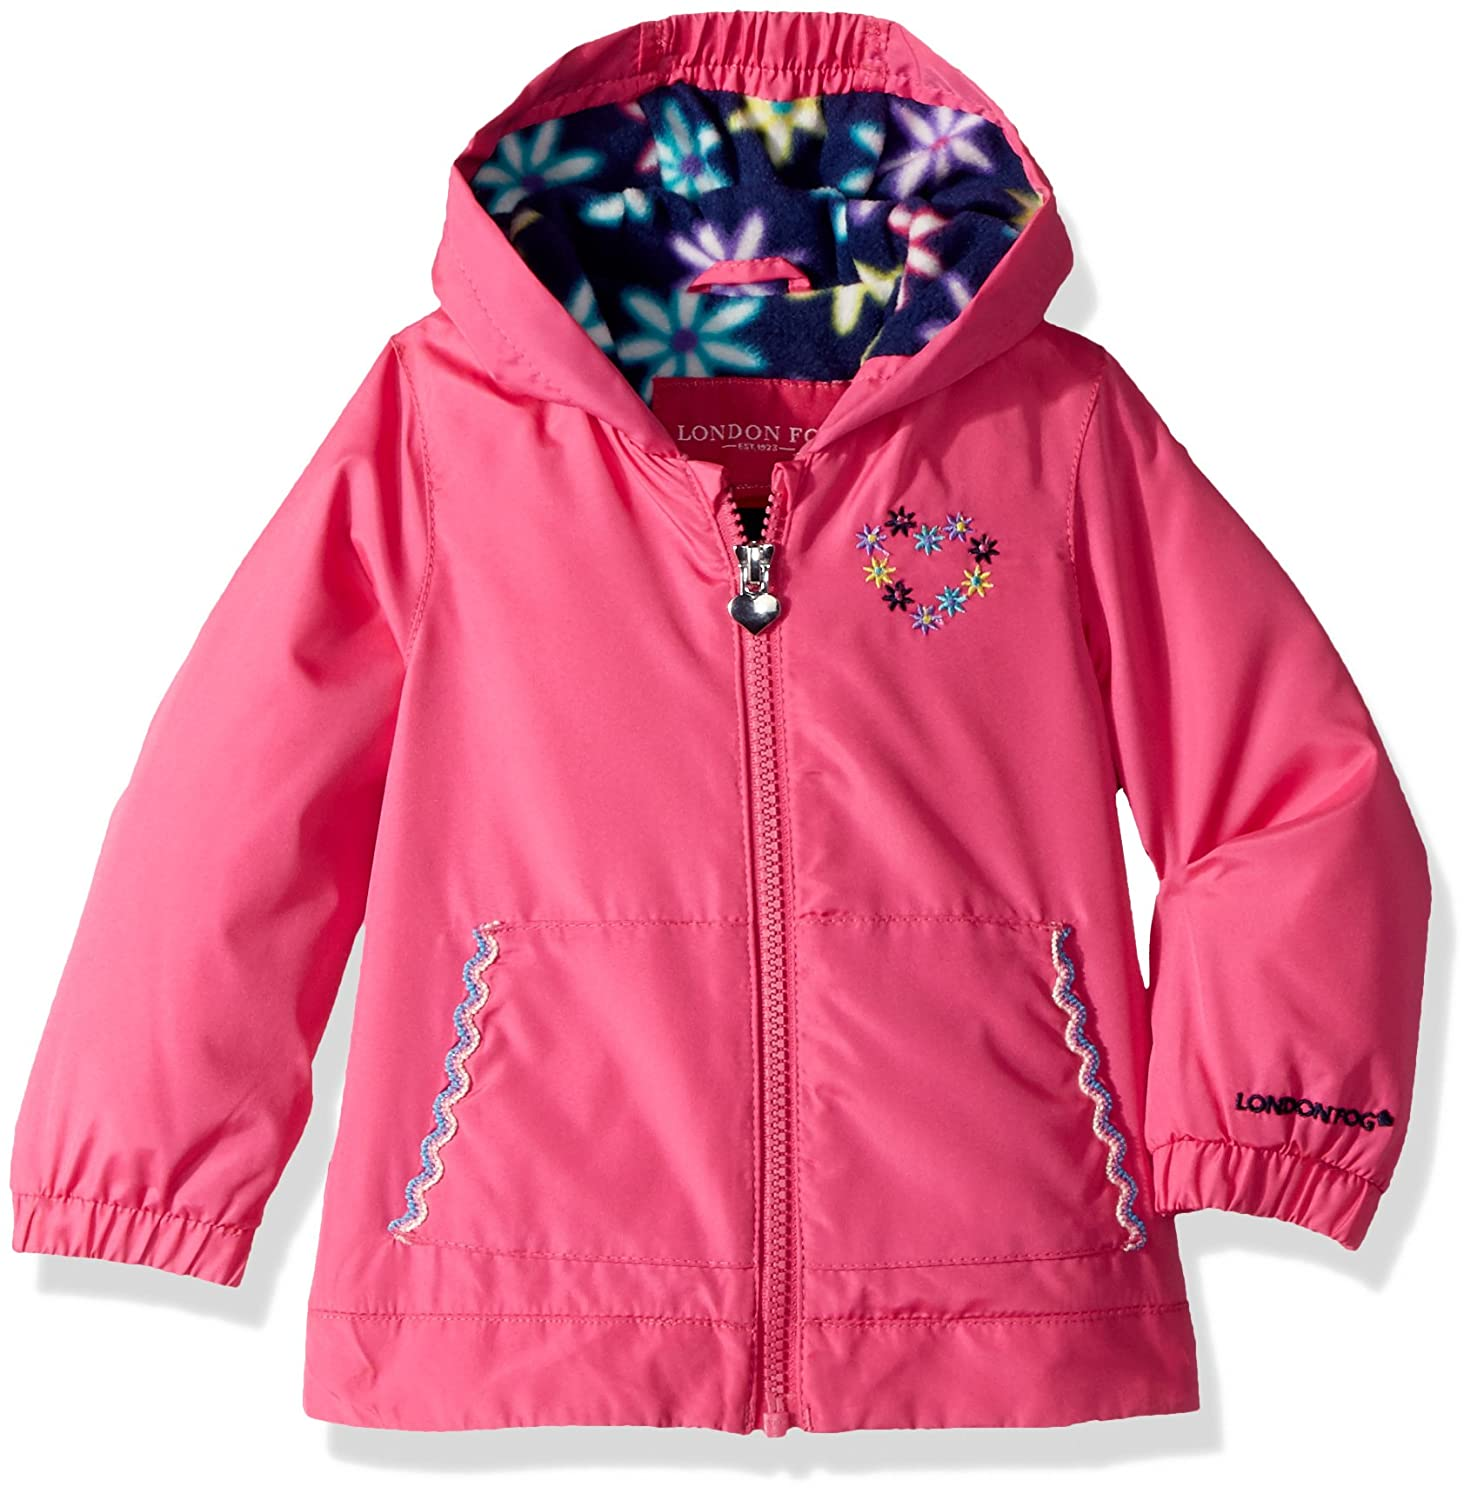 London Fog Baby Girls' Floral Printed Fleece Lined Jacket L116578-AN